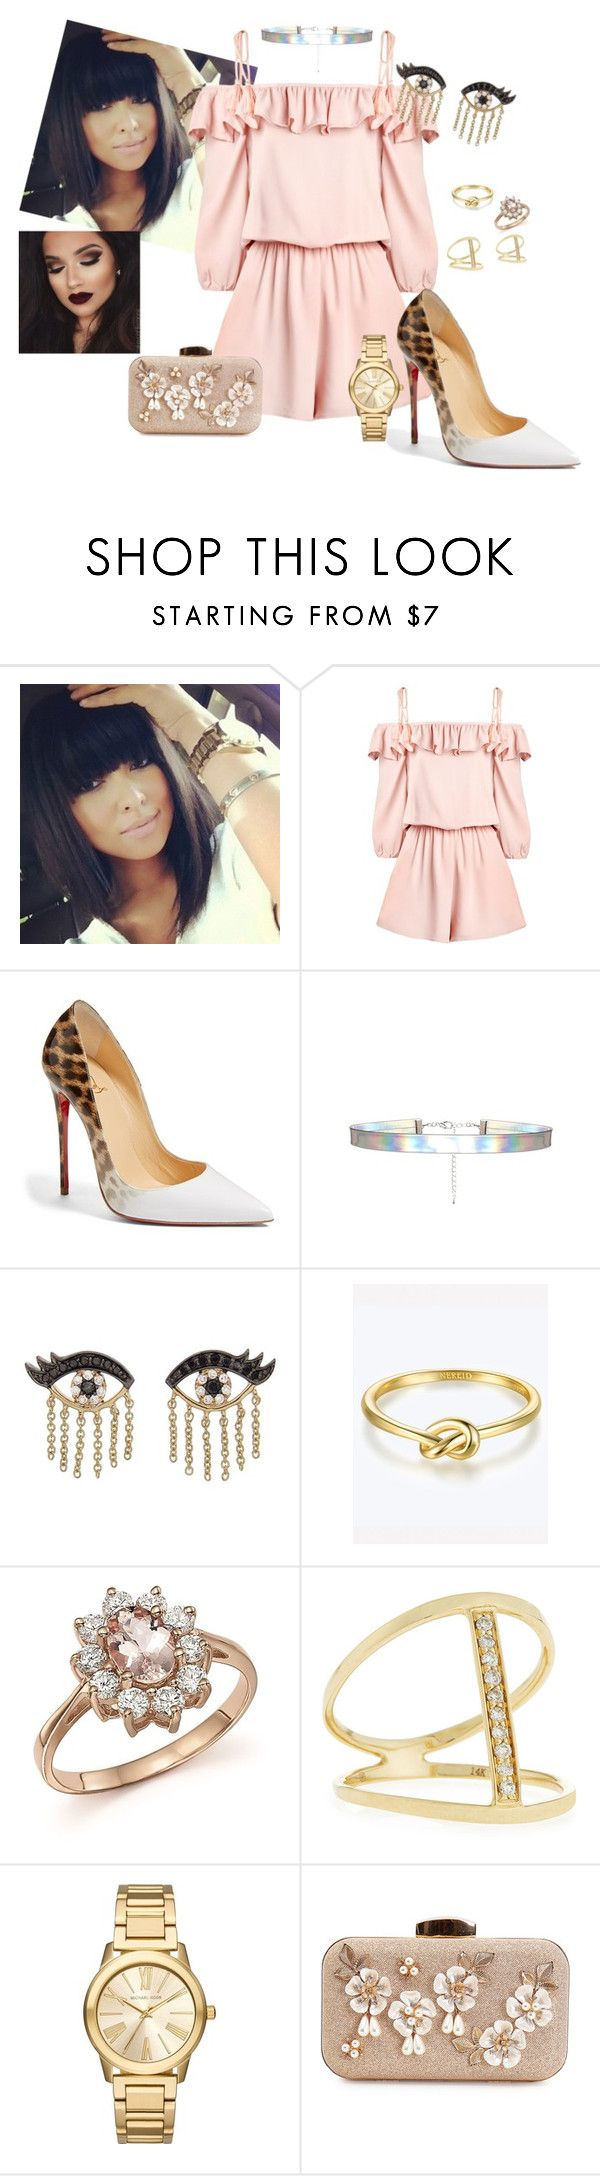 """Sem título #1137"" by anaritaferreira on Polyvore featuring moda, Christian Louboutin, Sydney Evan, Bloomingdale's e Michael Kors"